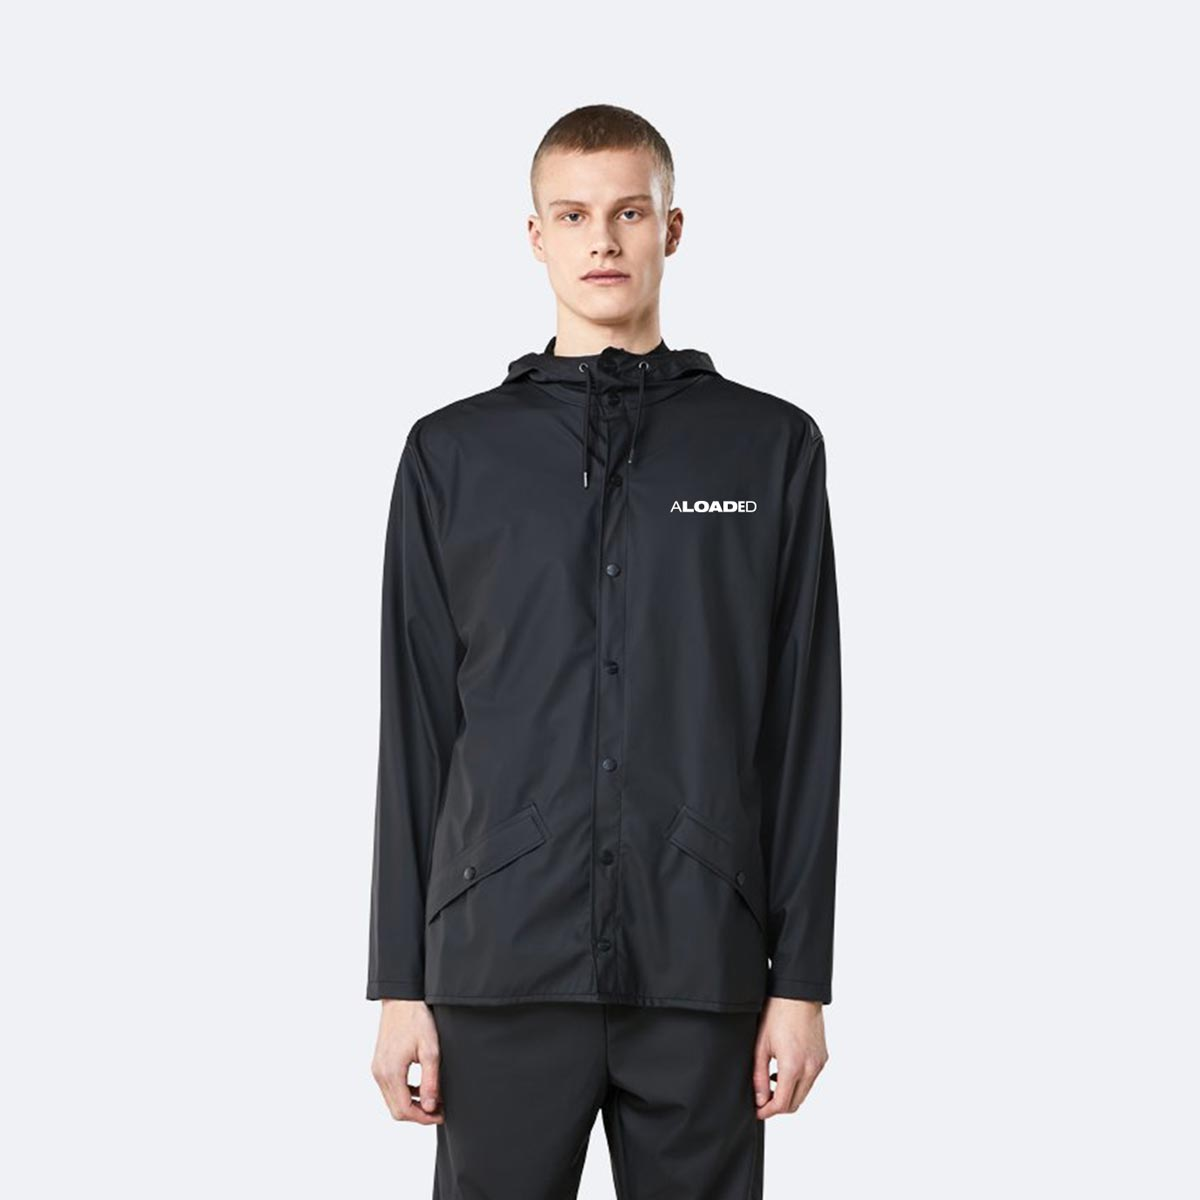 Branded unisex rainjackets from Rains and Framme